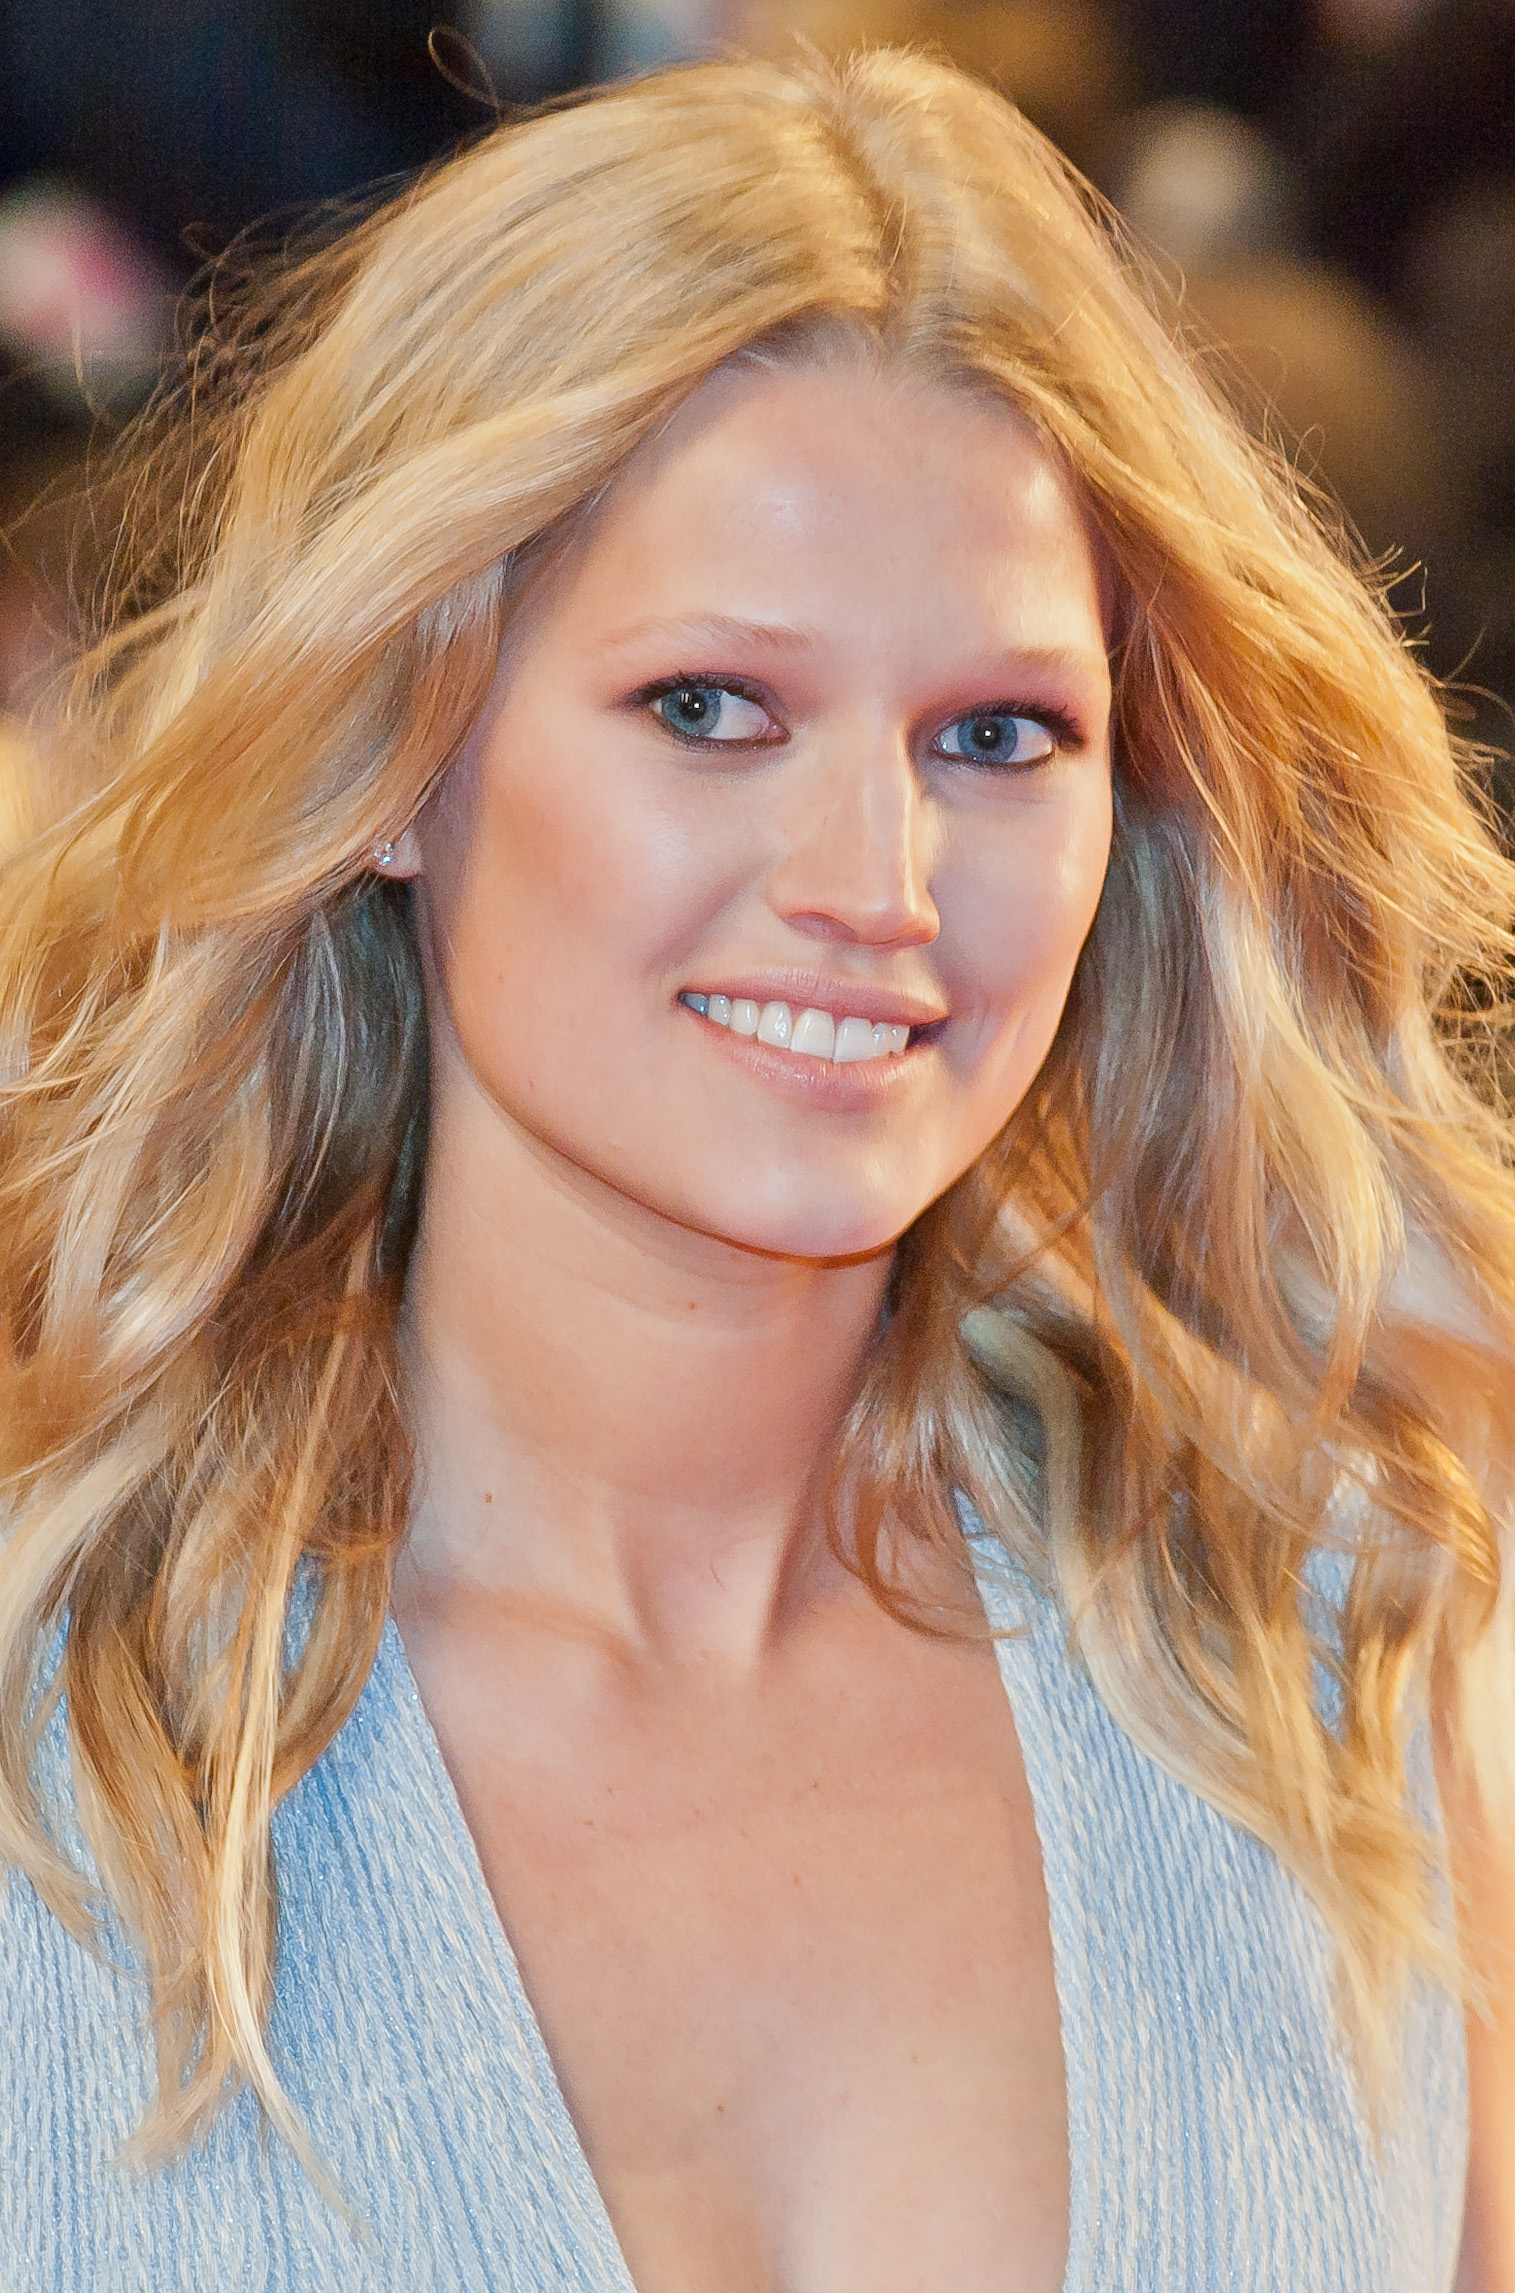 The 26-year old daughter of father (?) and mother Anja Toni Garrn in 2018 photo. Toni Garrn earned a  million dollar salary - leaving the net worth at 1.5 million in 2018